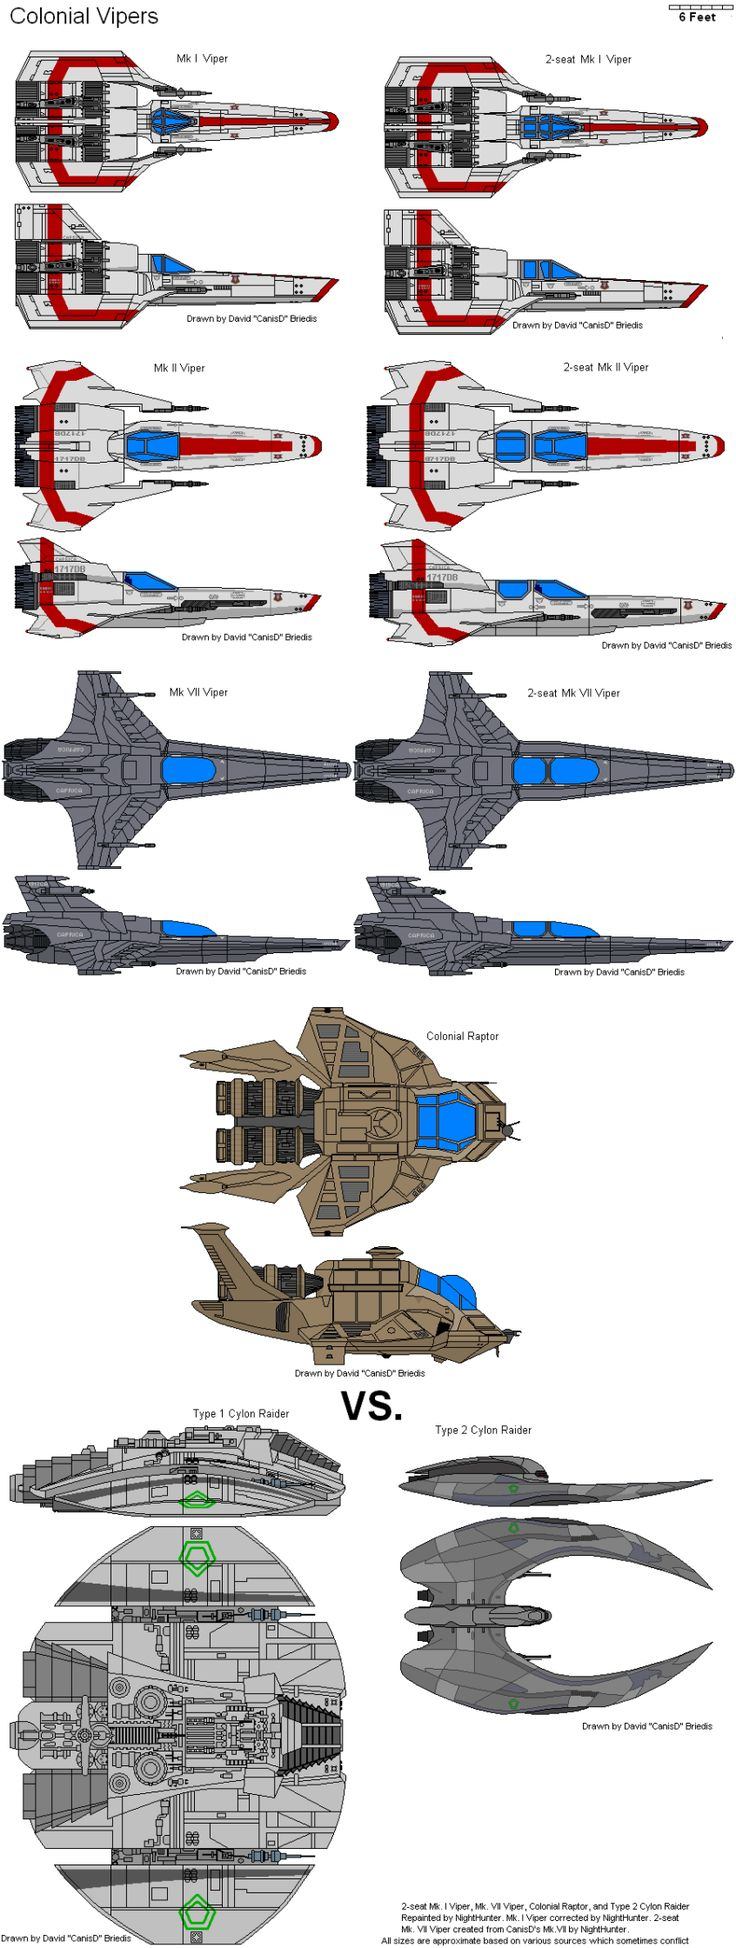 Battlestar galactica size comparison of colonial viper cylon raider